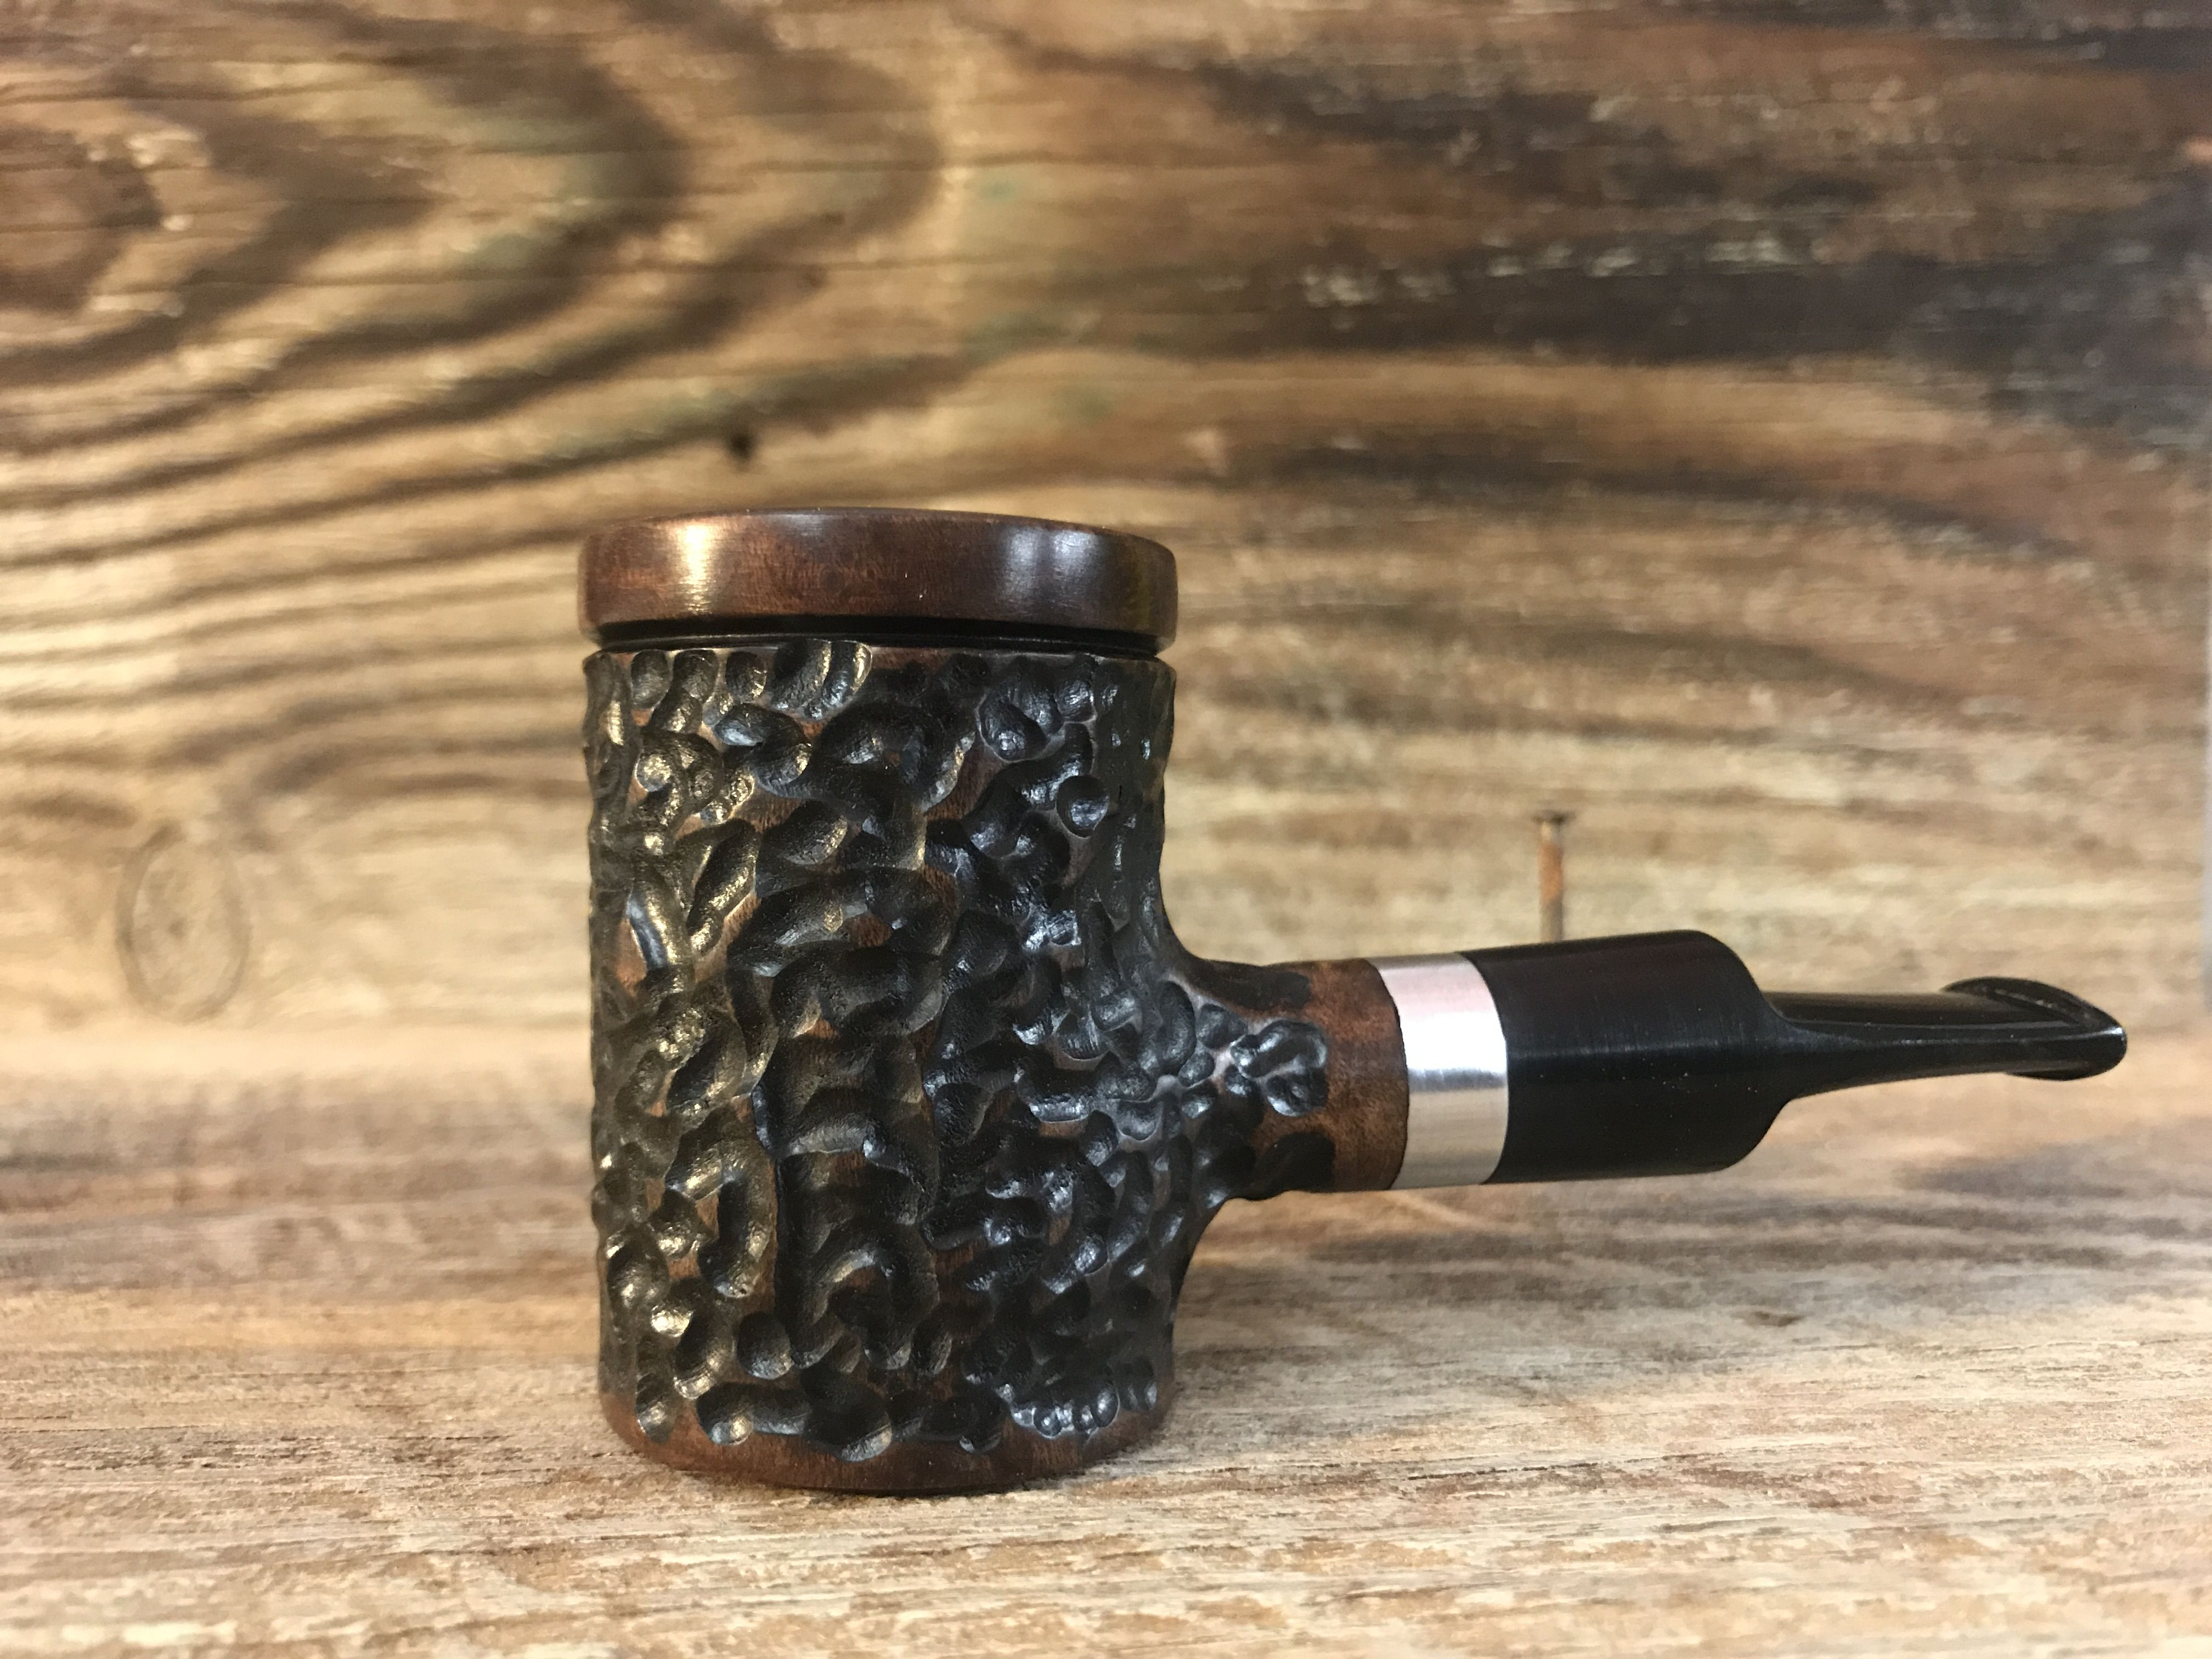 Steve Criner of New Rev PipeCO takes pride in every one of his custom handmade tobacco pipes. HIs pipes have been shipped all over the world! & Very awesome custom poker with polished accent by Steve Criner of ...